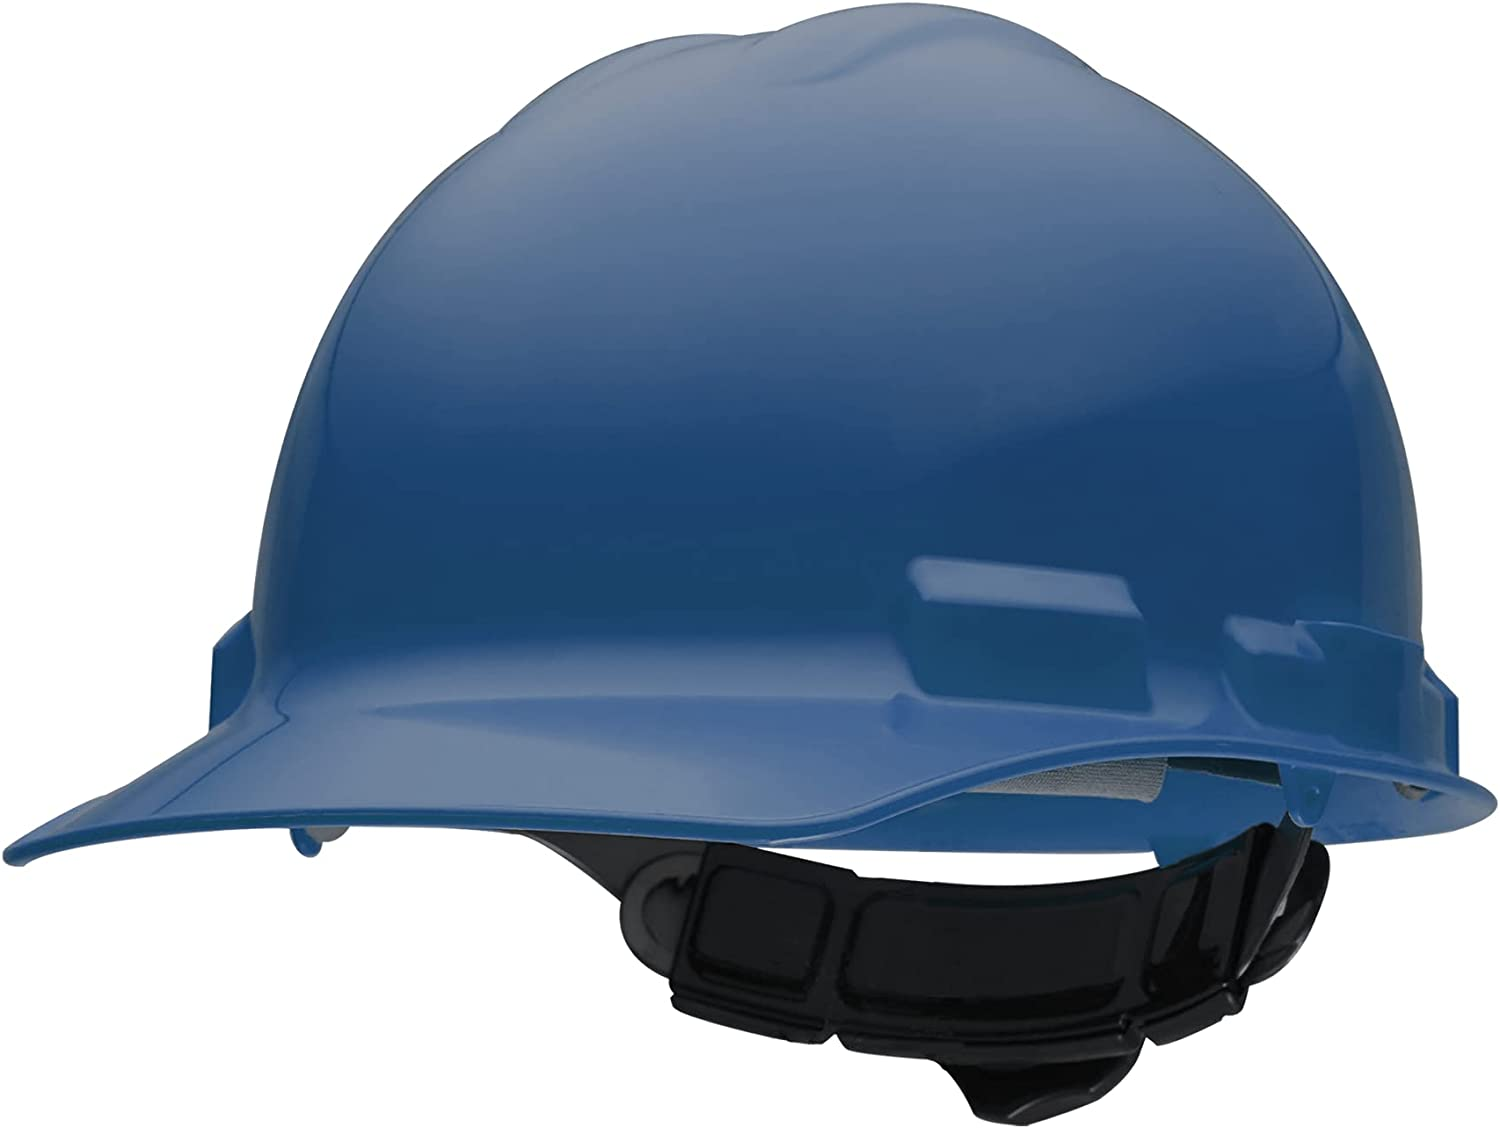 Ironclad Hard Hat Yukon ES600, Made in USA, Standard Brim, 6 Point Suspension, Class E, Color Blue (G60101) - -